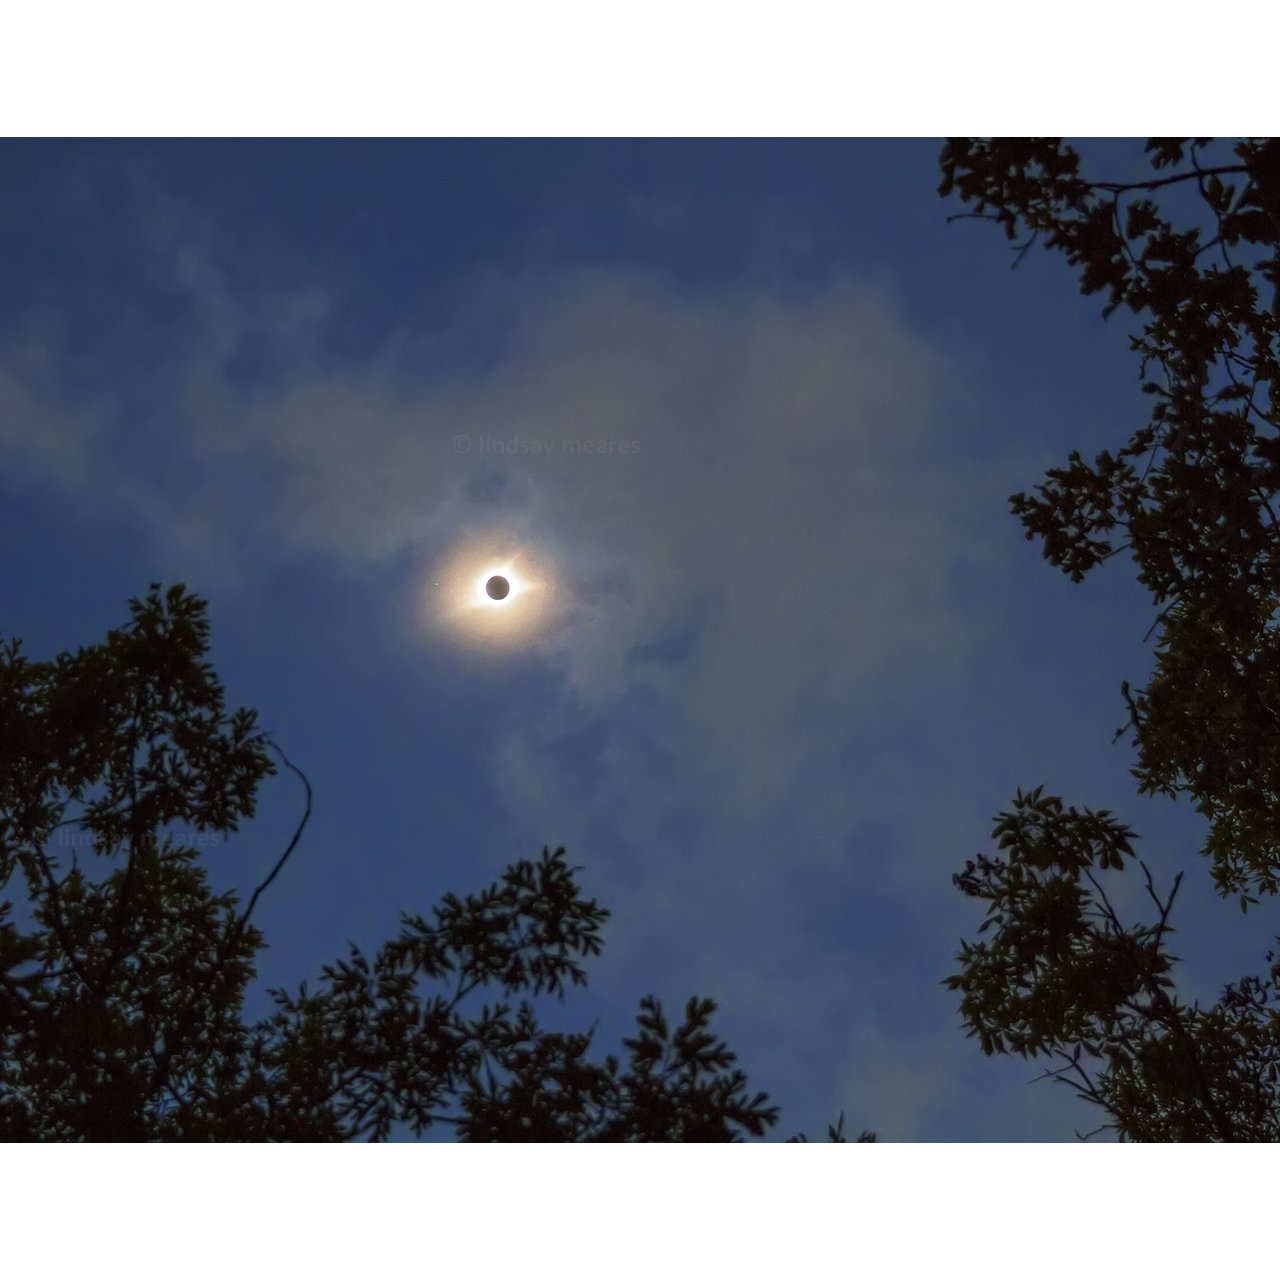 11x14 Solar Eclipse Print ''Through the Trees'' by TravLin Photography